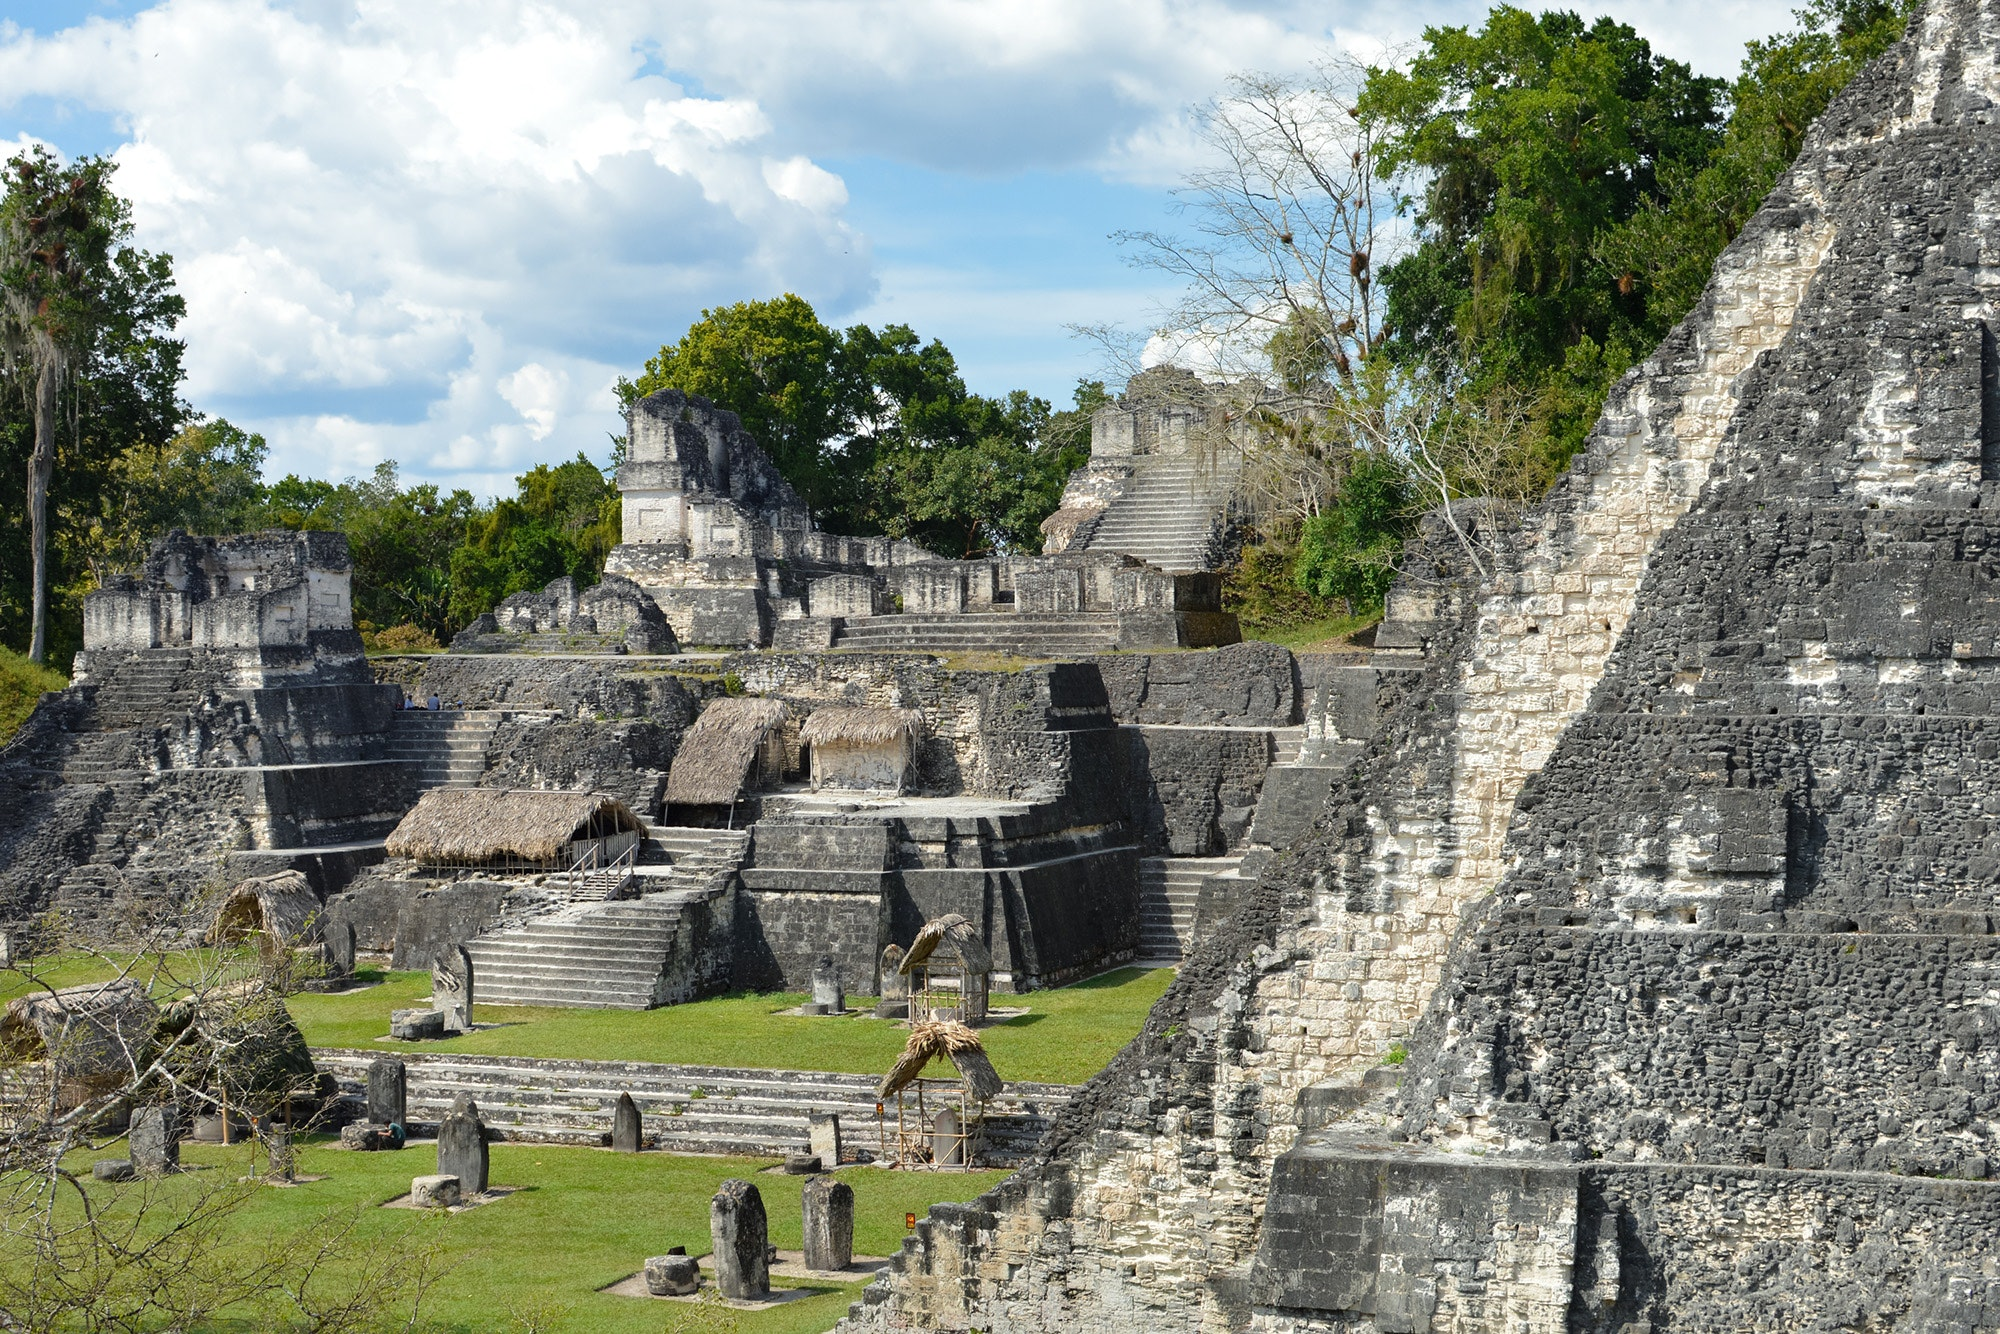 The structures of Tikal, such as the North Acropolis, are open to the public, allowing visitors to climb stairs and walk through rooms, imagining what life might have been like in 800 C.E.